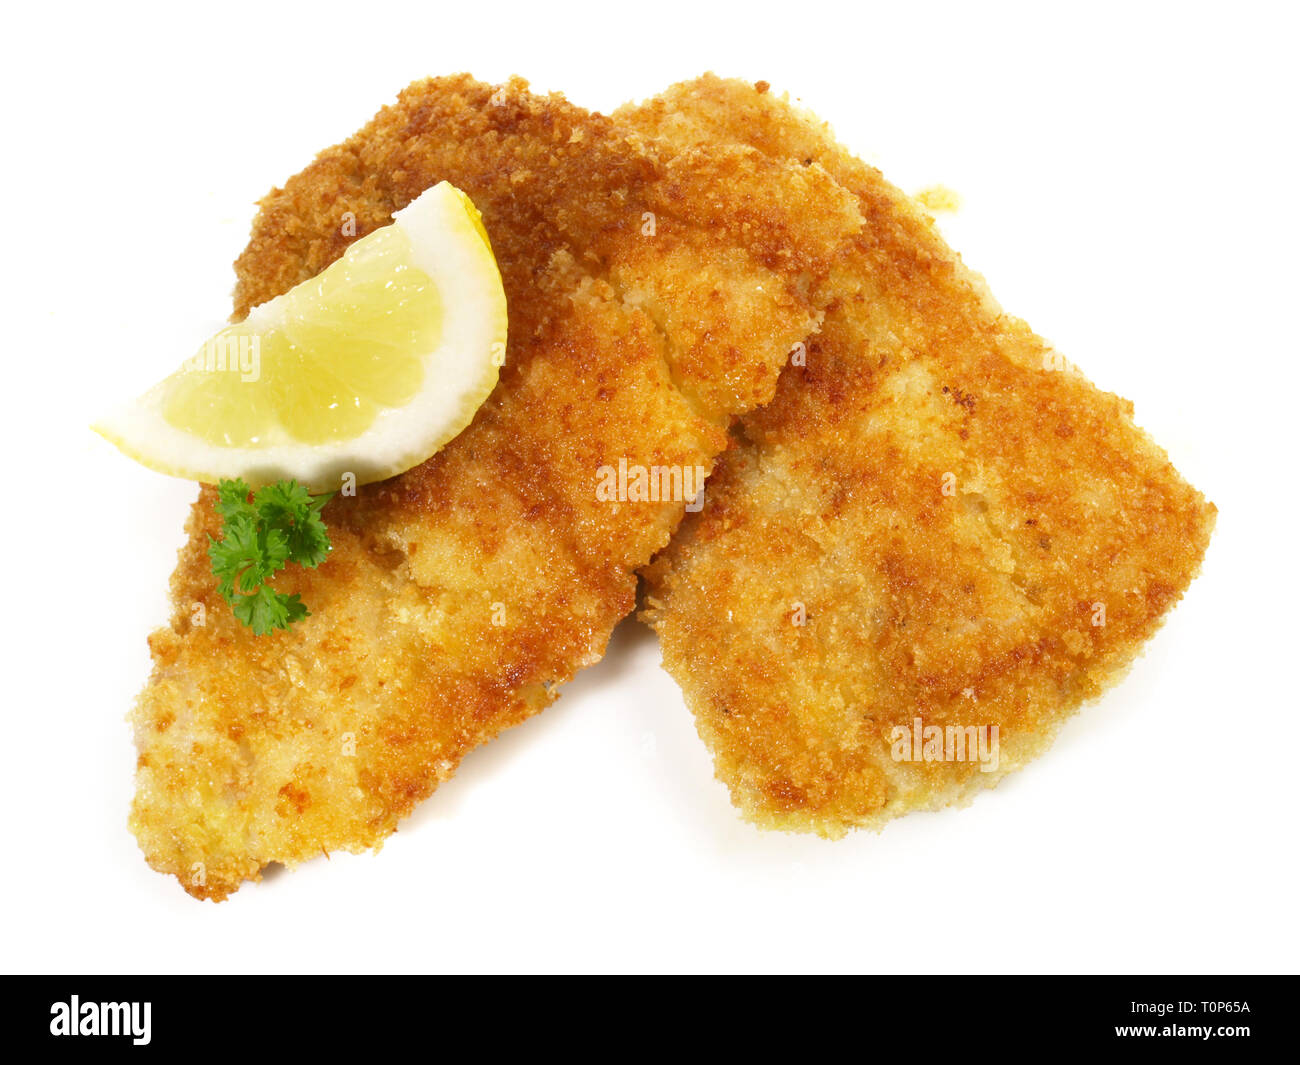 Fried Pollack Fish in breadcrumb coating on white Background - Stock Image